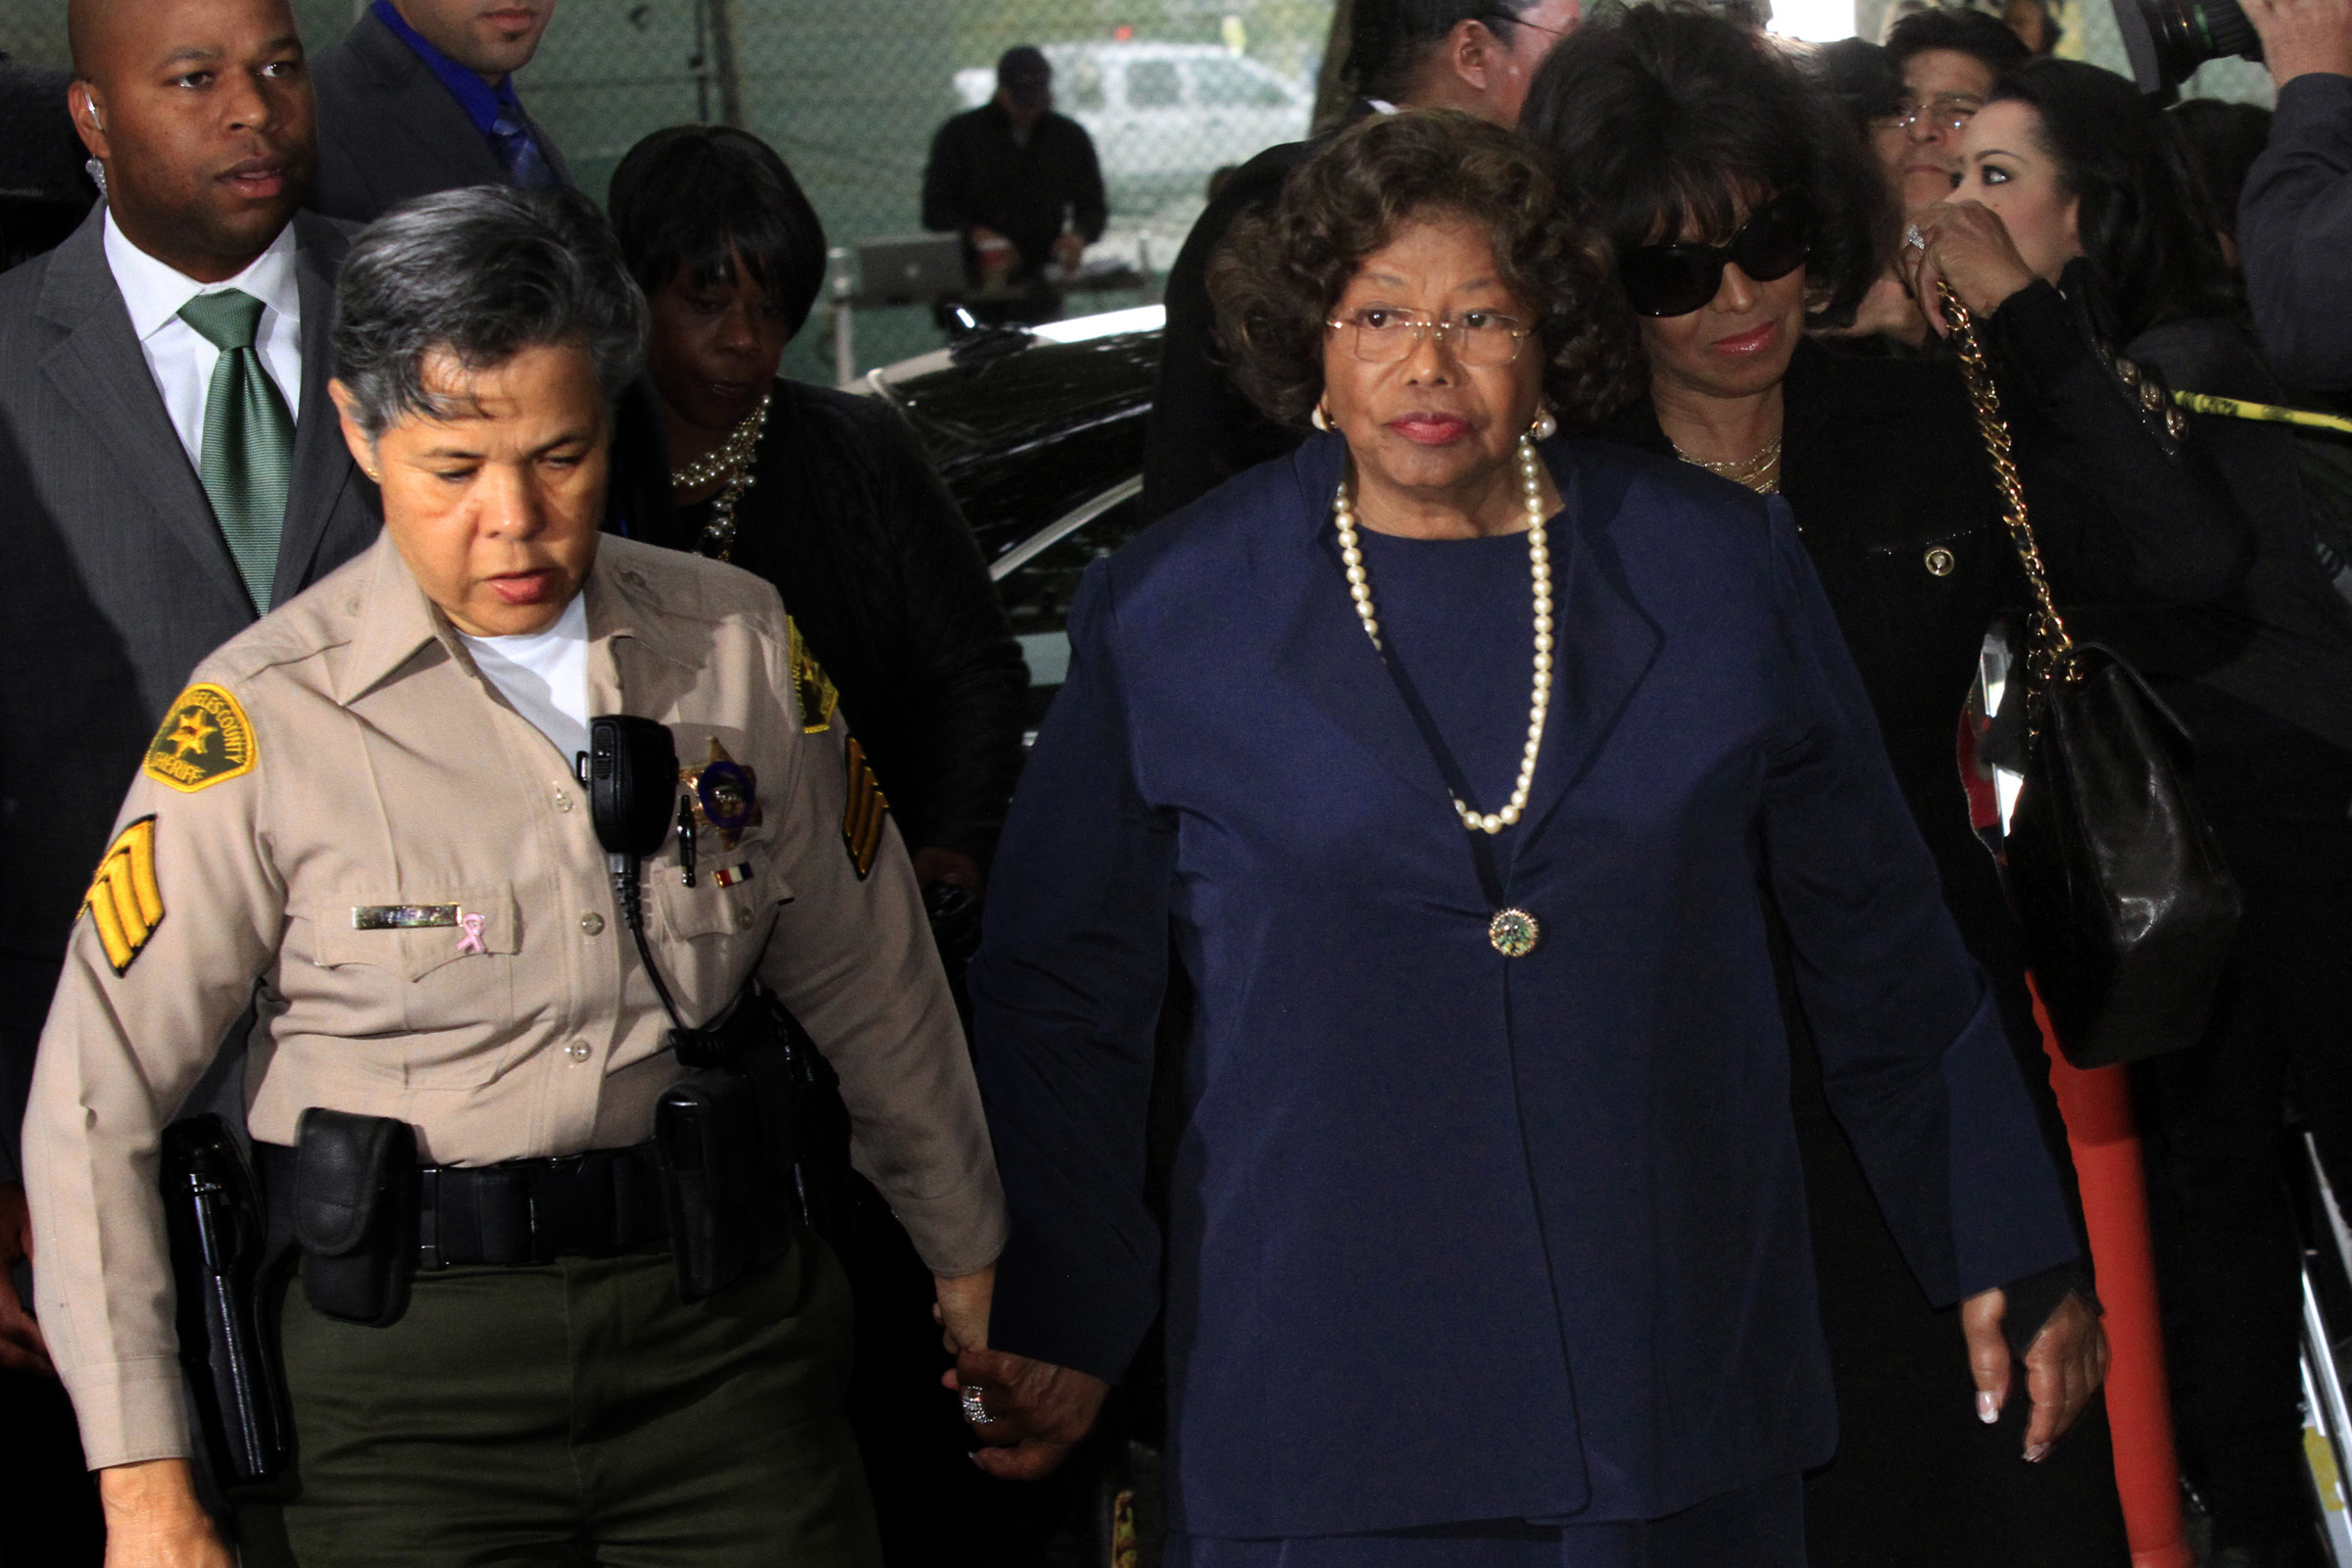 Katherine Jackson arriving at court during the earlier Conrad Murray trial is seeking damages agains